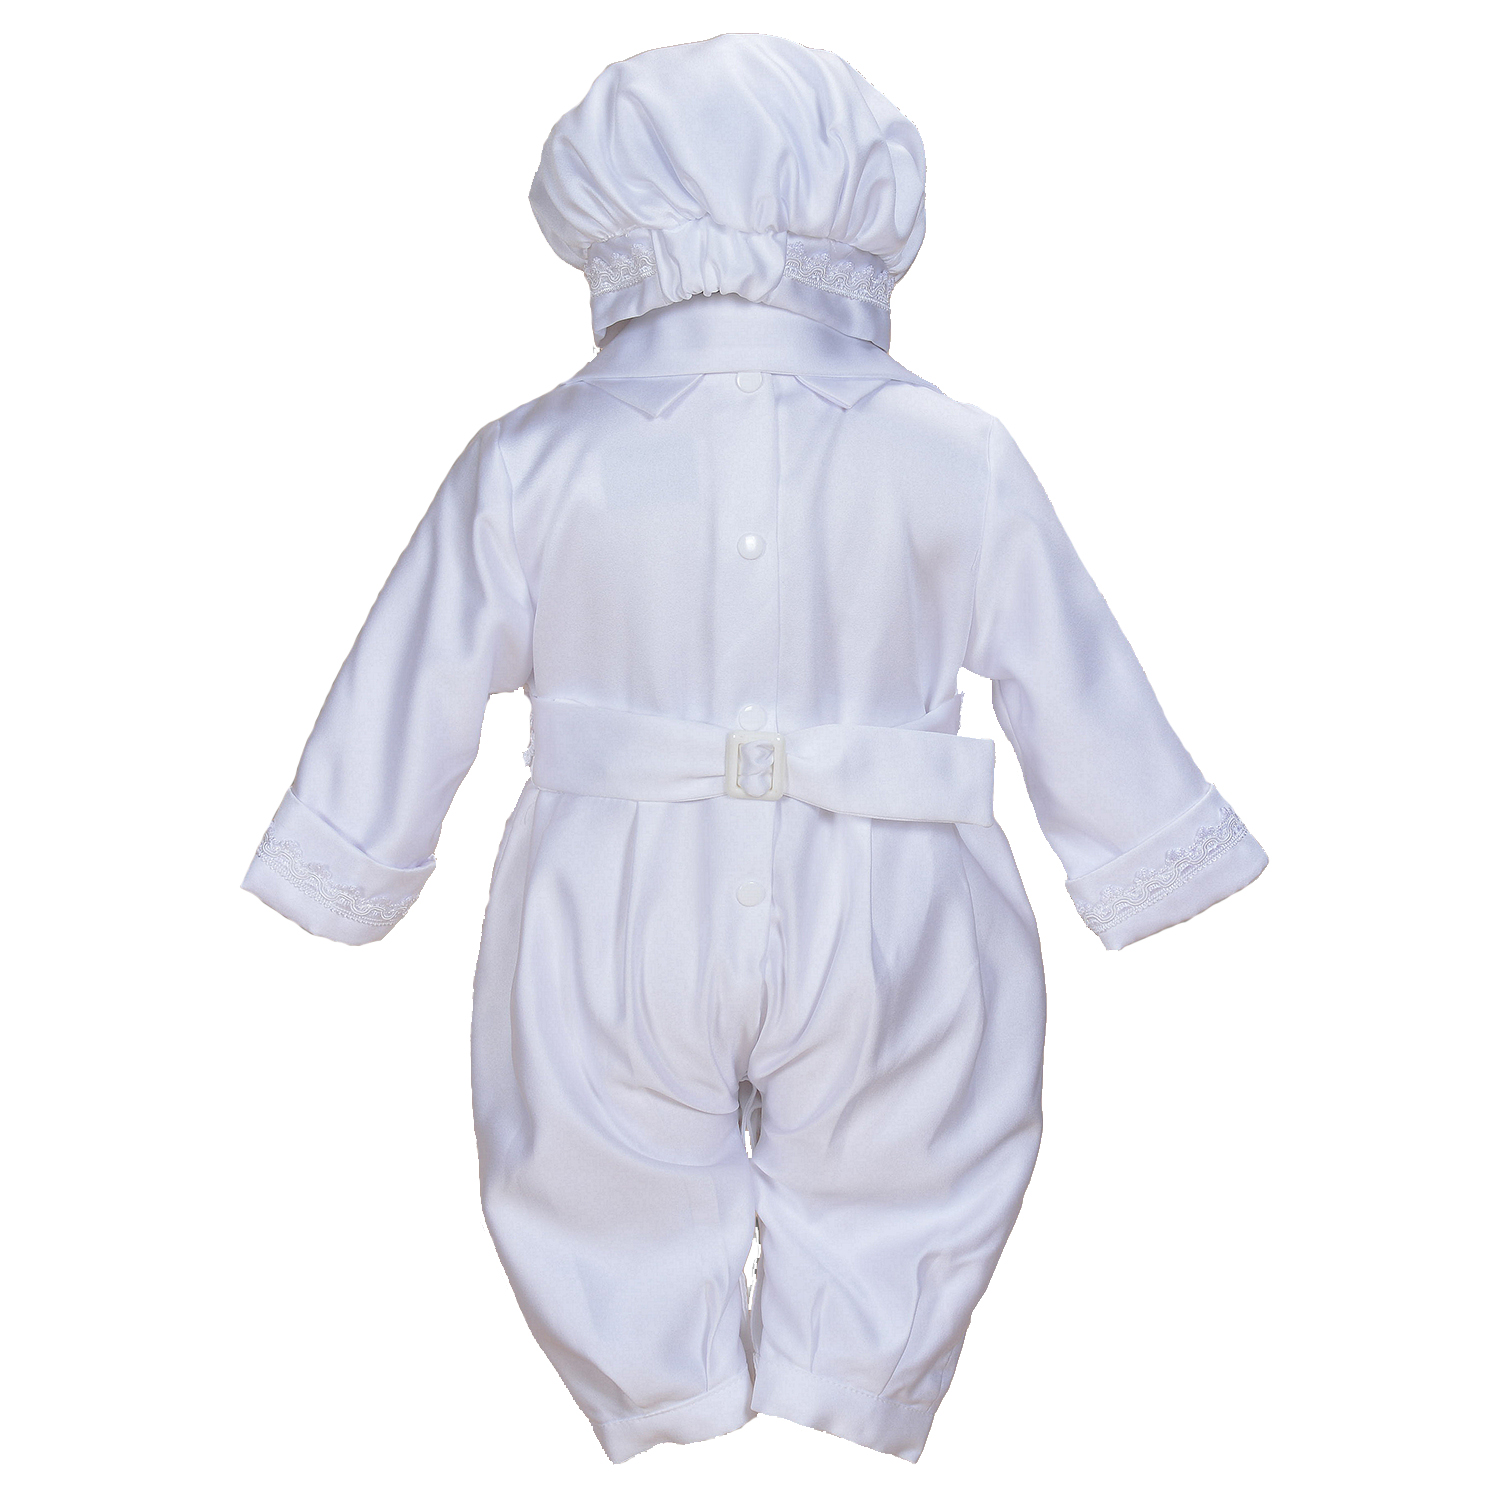 Cinda Boys Satin Christening Romper Set with Hat Scarf Shoes 0 3 6 9 12 Months